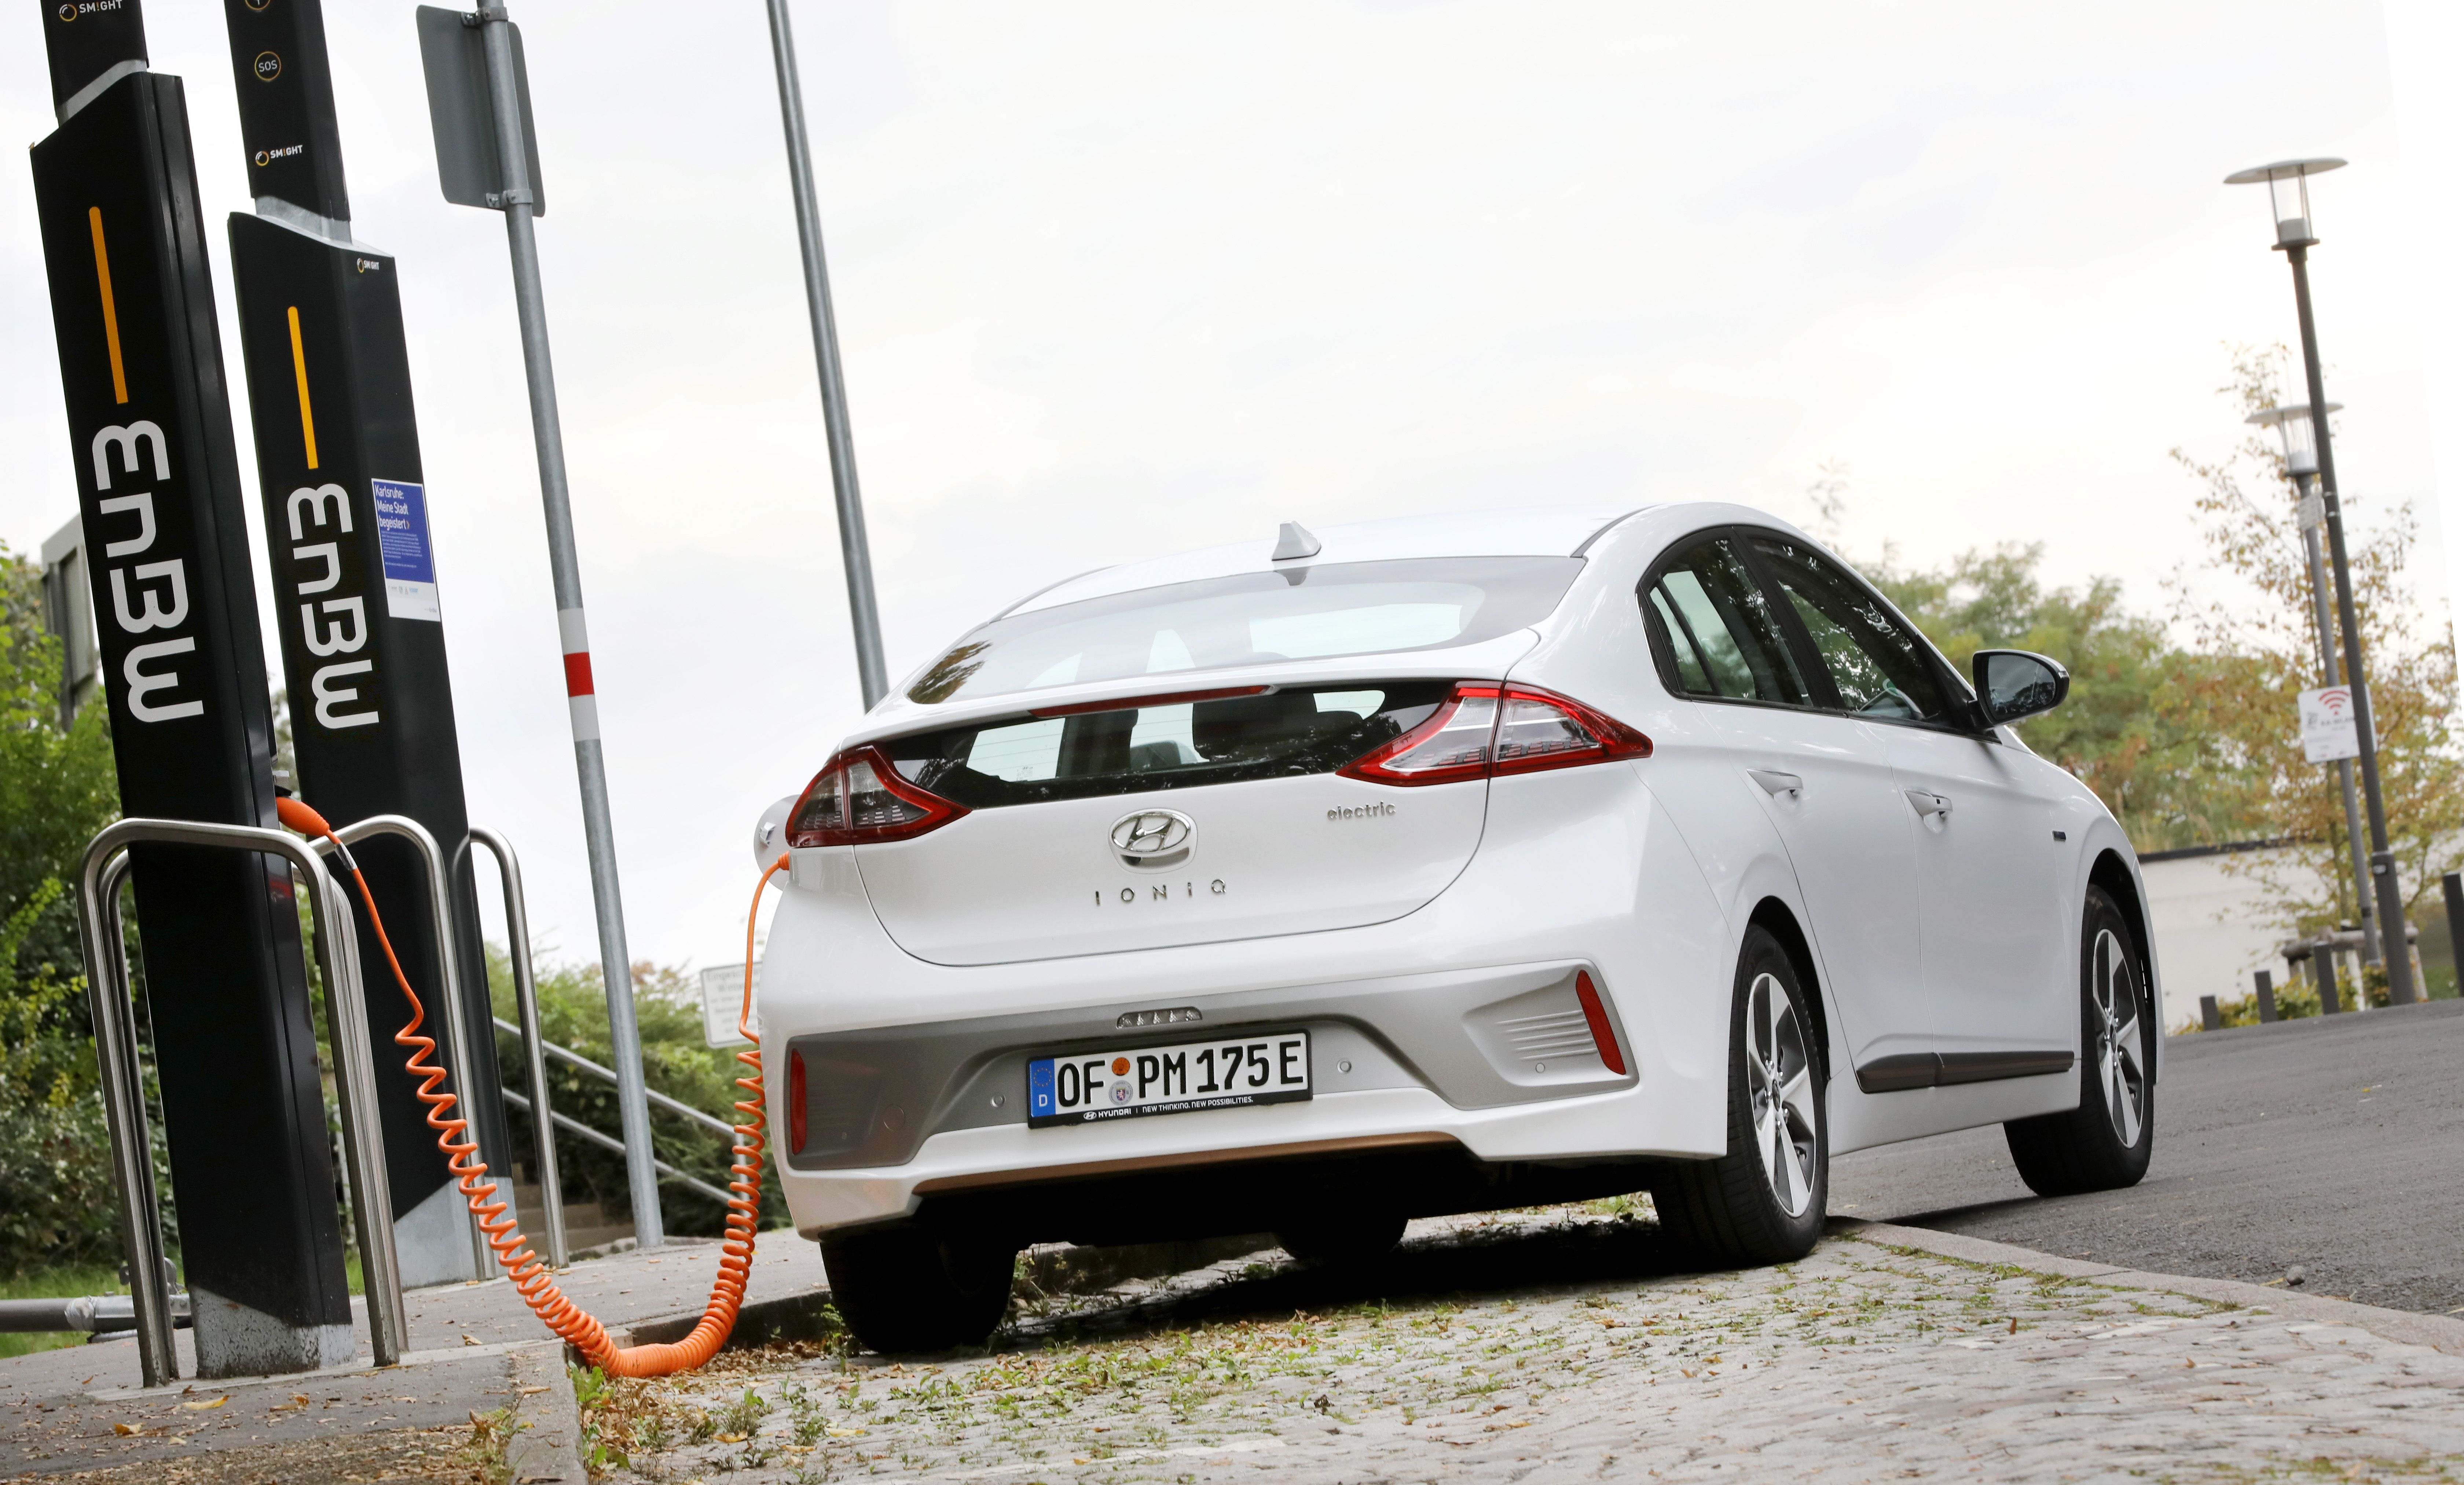 Picture 3: Fully charged: EnBW will be supplying Hyundai dealers and customers with electricity for the IONIQ in the future